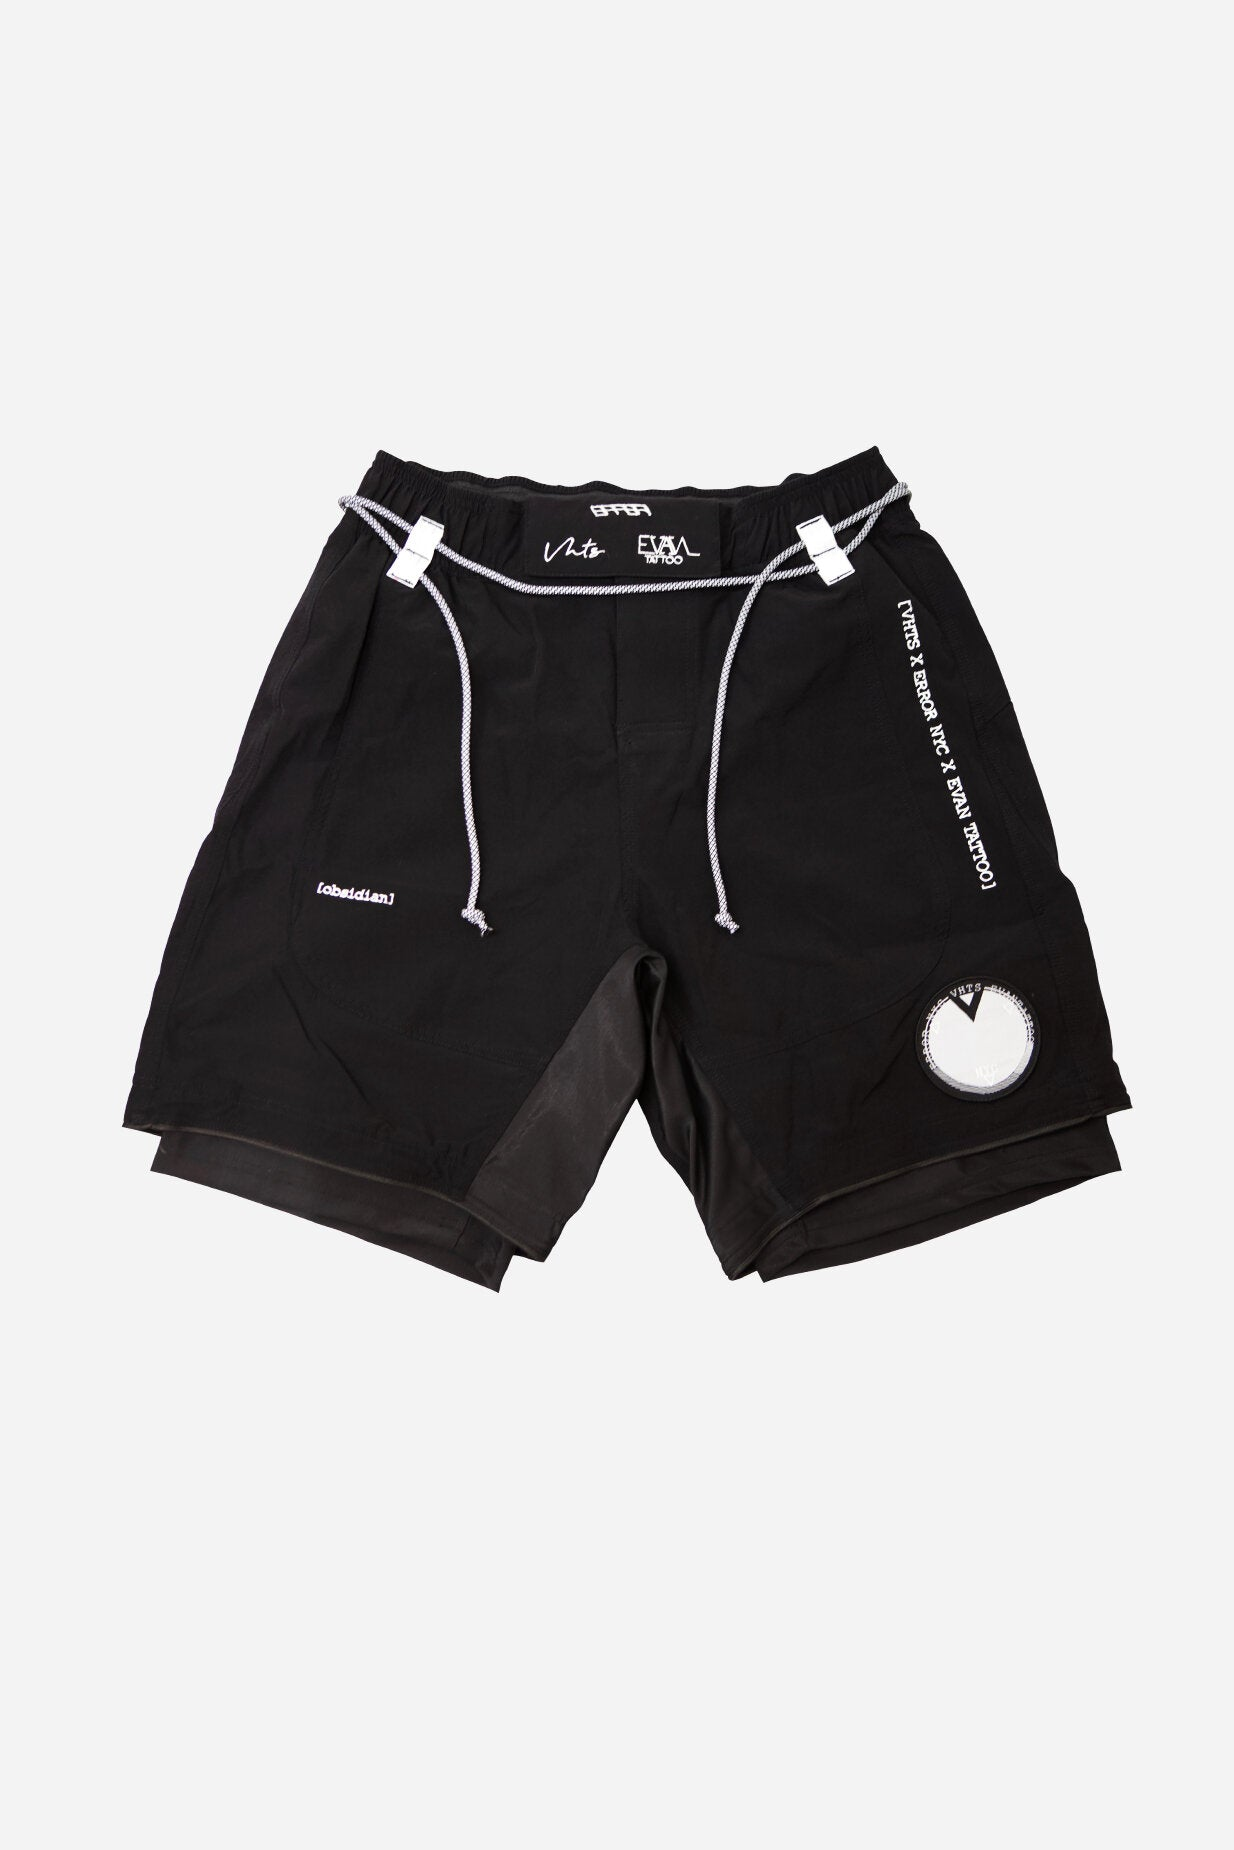 ERROR NYC x EVAN TATTOO Collaboration combat shorts front vhts europe